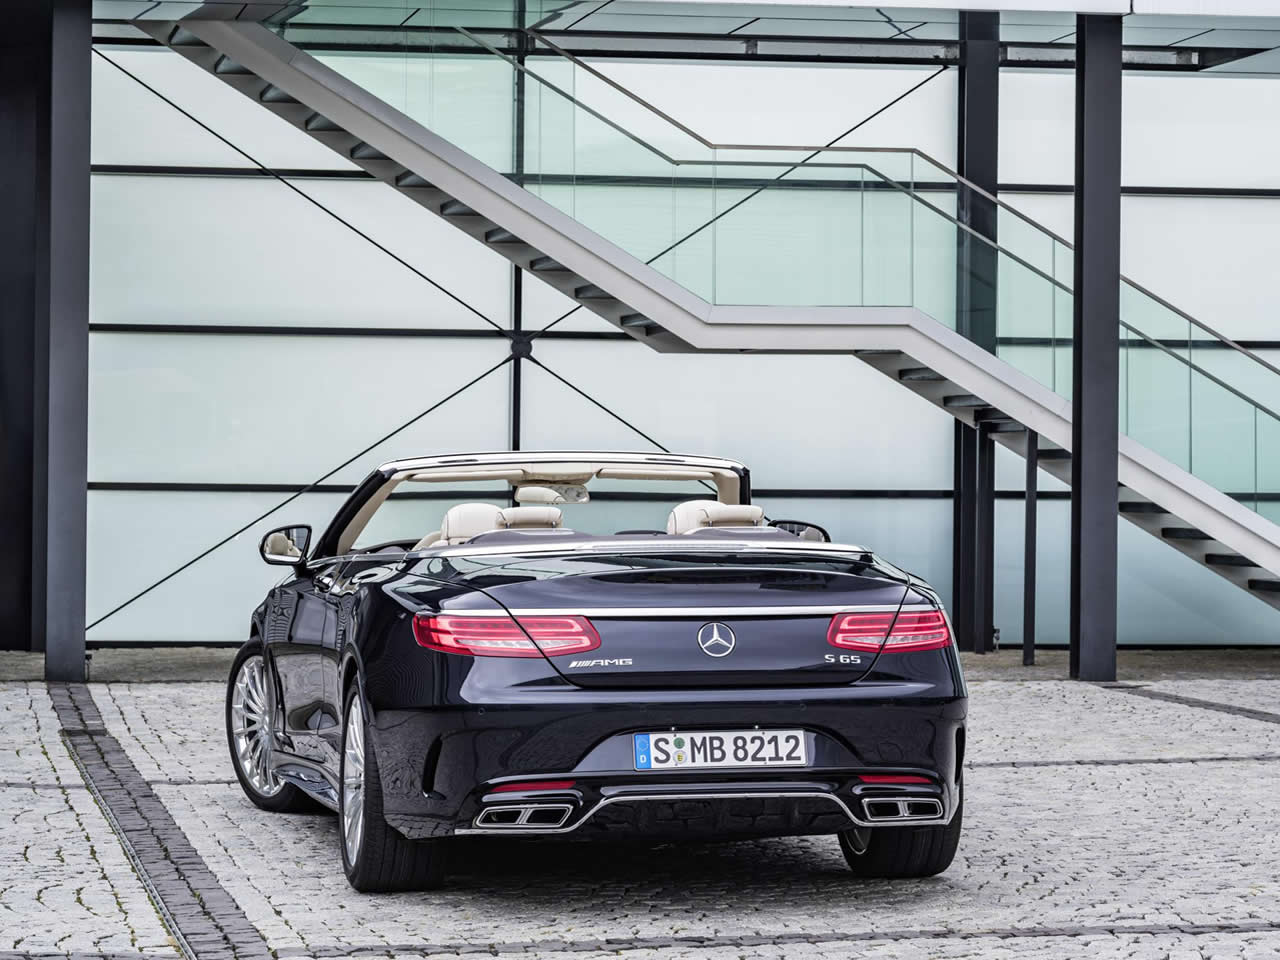 Mercedes benz s class amg cabriolet buying guide for Mercedes benz 550 amg